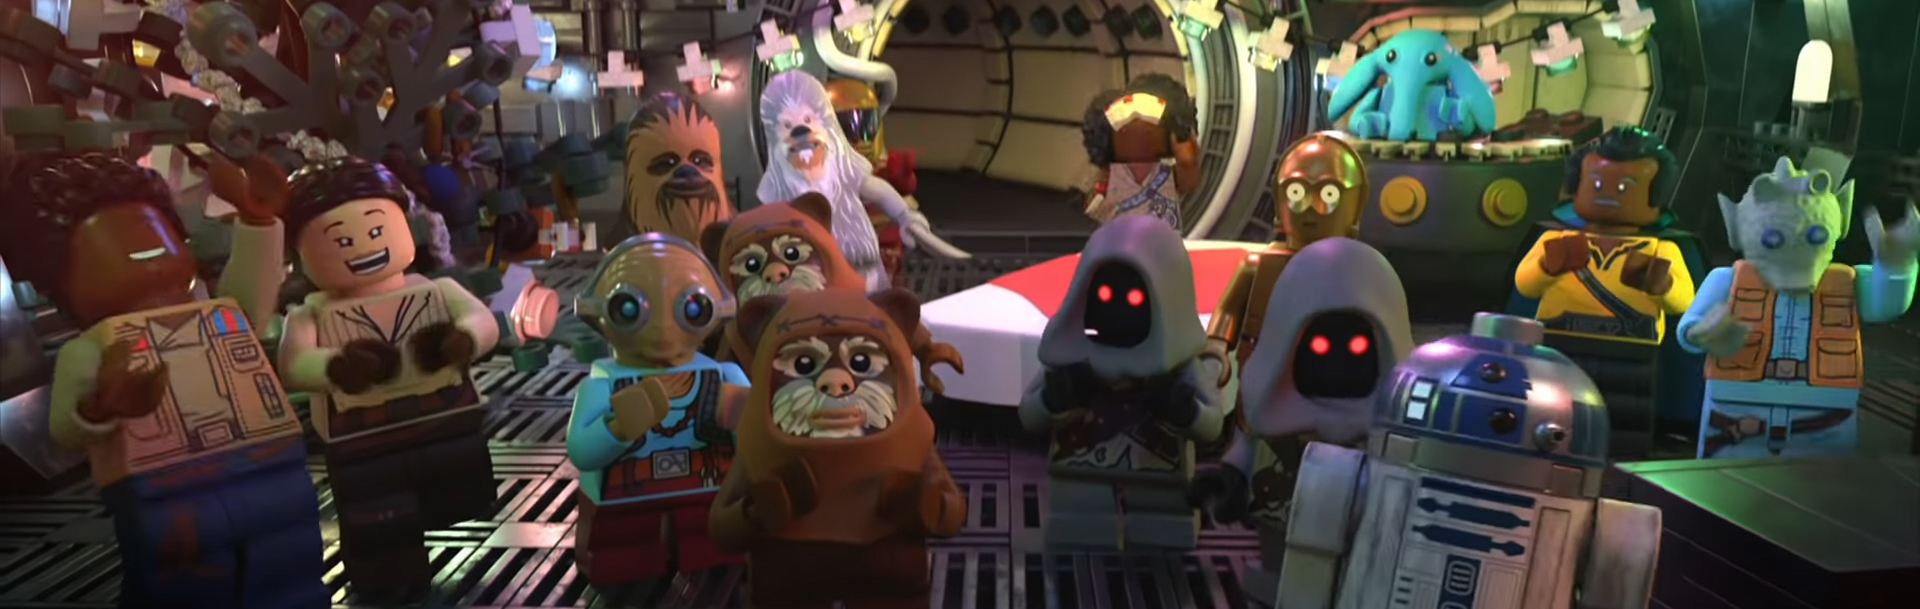 The Lego Star Wars Holiday Special. Image Credit: Disney+